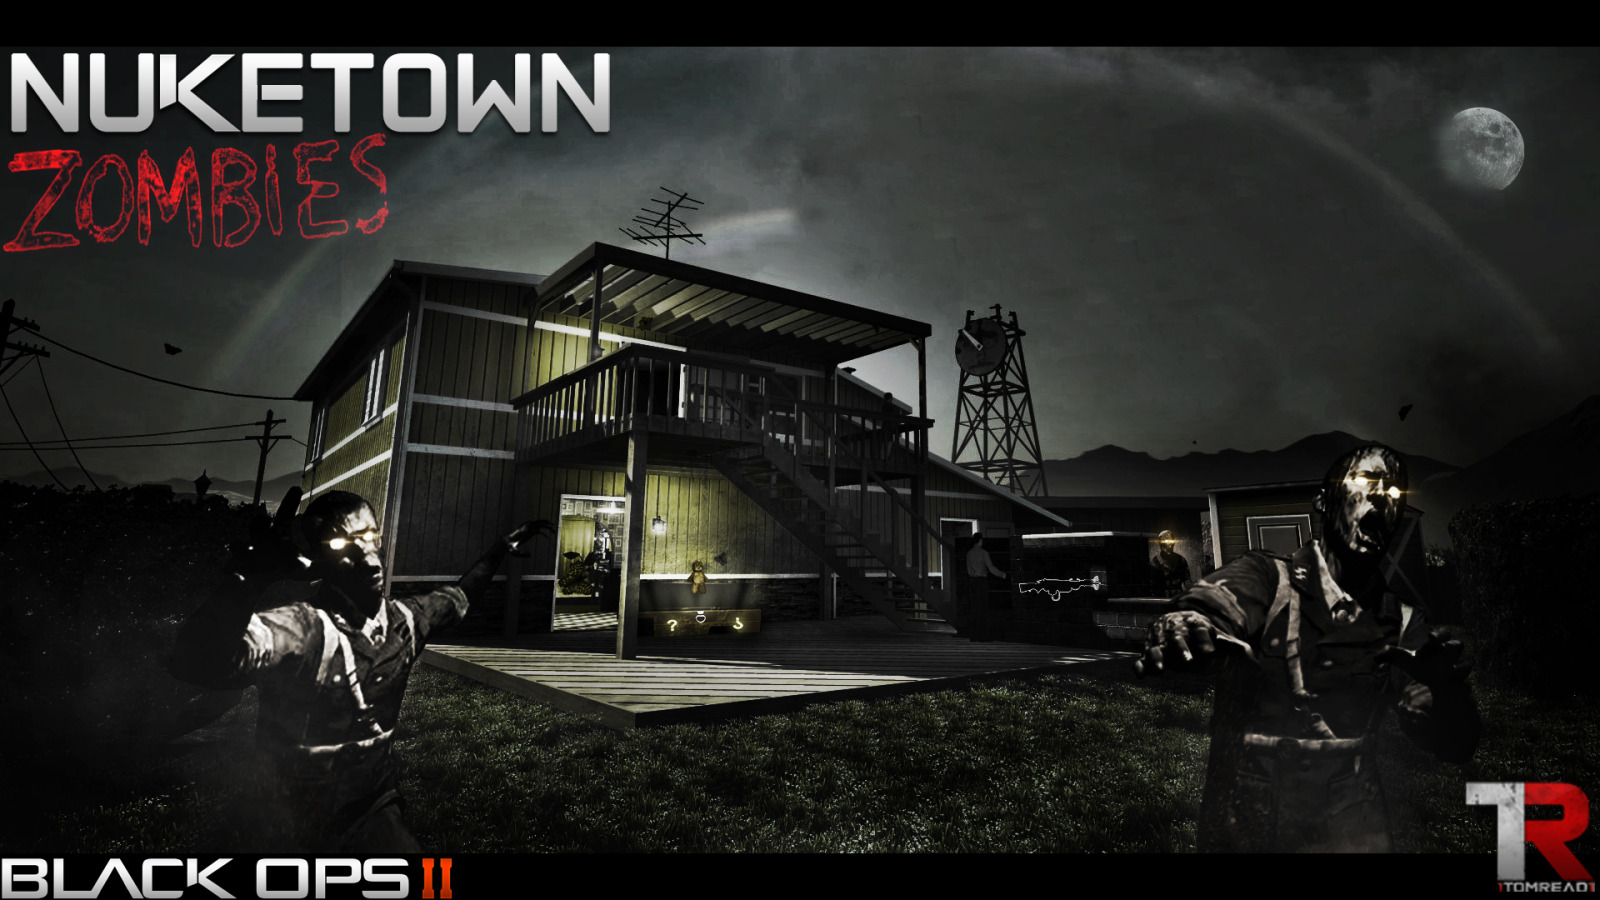 User blog:Slipshod LAKER/Nuketown Zombies | Call of Duty ... on call of duty nuketown zombies ps3 cheats, black ops 2 nuketown 2025 map, black ops kino der toten map, black ops zombies transit map, on black ops 2 nuketown zombie map, black ops 2 zombies tranzit map, exo call of duty zombies outbreak map, black ops first strike zombie map, bo2 origins map, cod black ops 2 origins map, black ops 2 zombies buried map, call of duty advanced warfare 2 zombies map, call of duty zombie map names, cod bo2 nuketown zombies map,